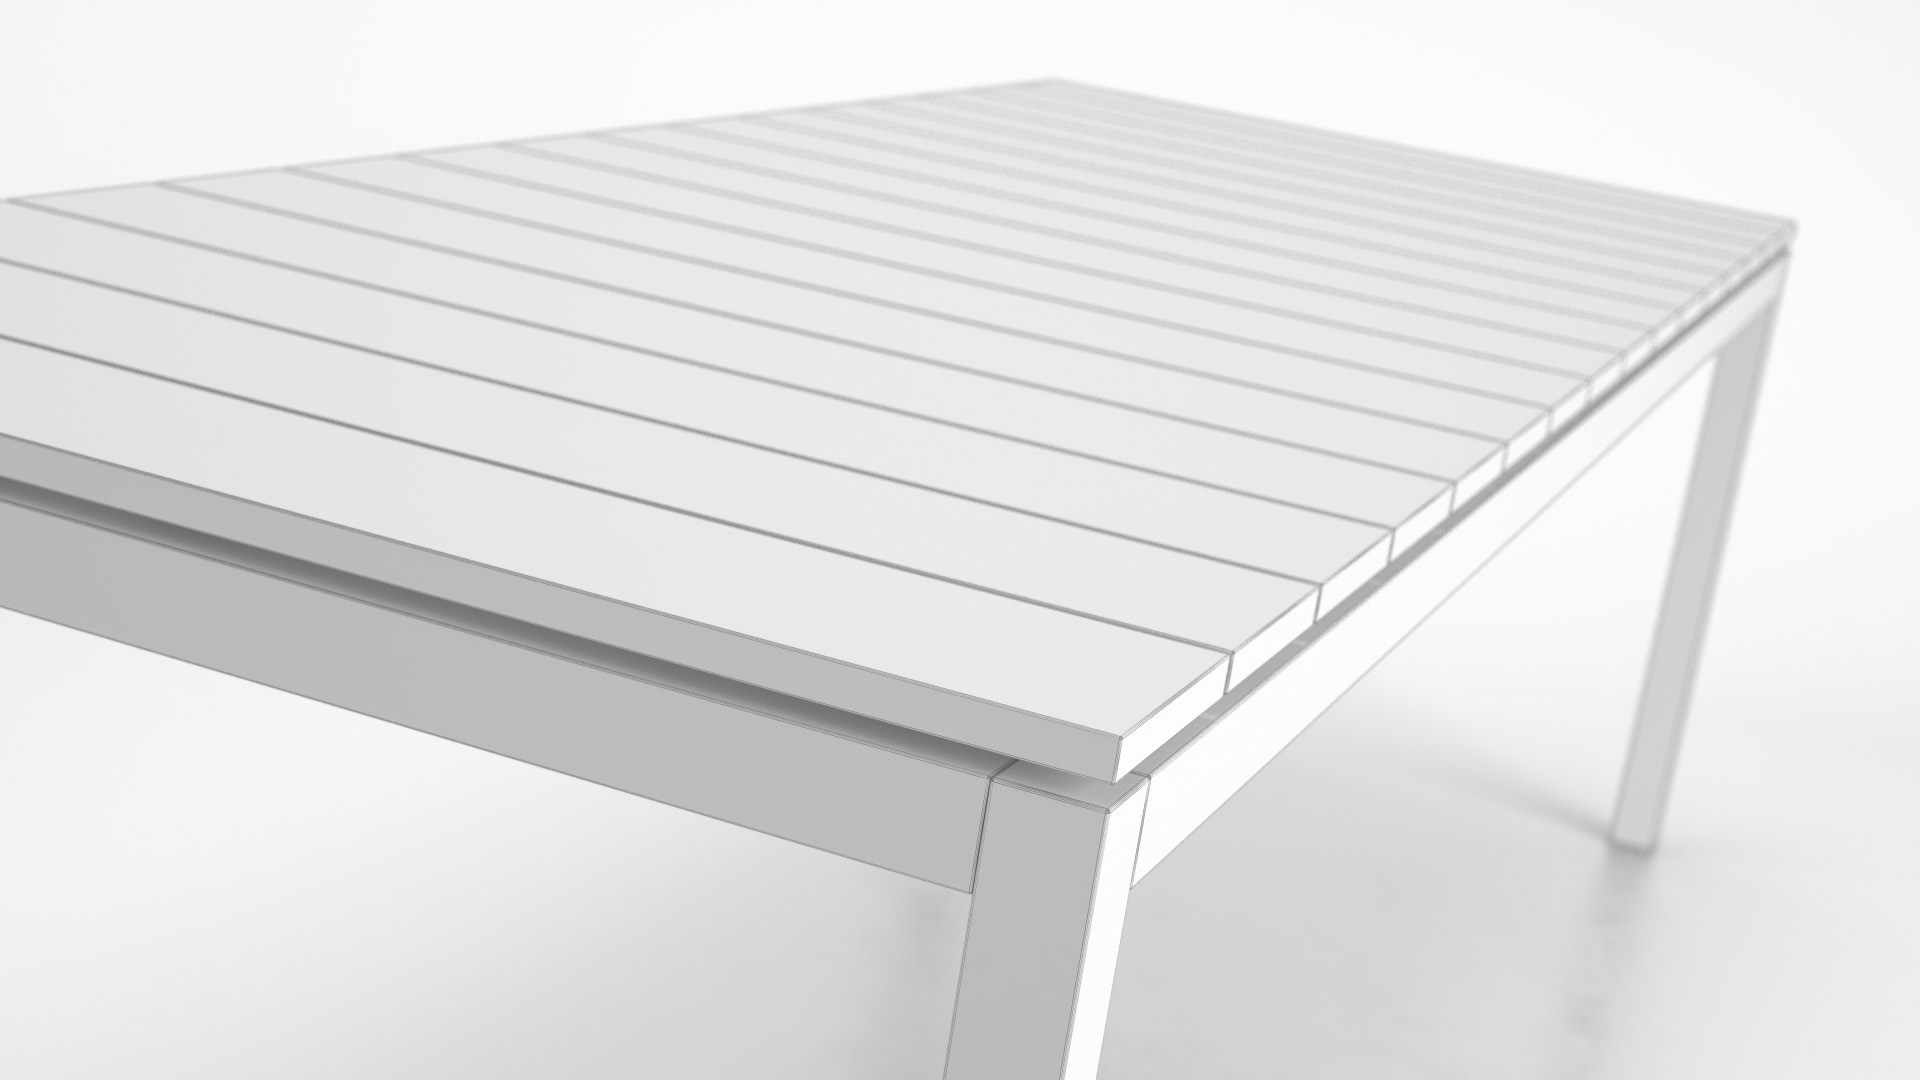 Tribu_NatalTechno_Table_WhiteSet_01_wire_0003